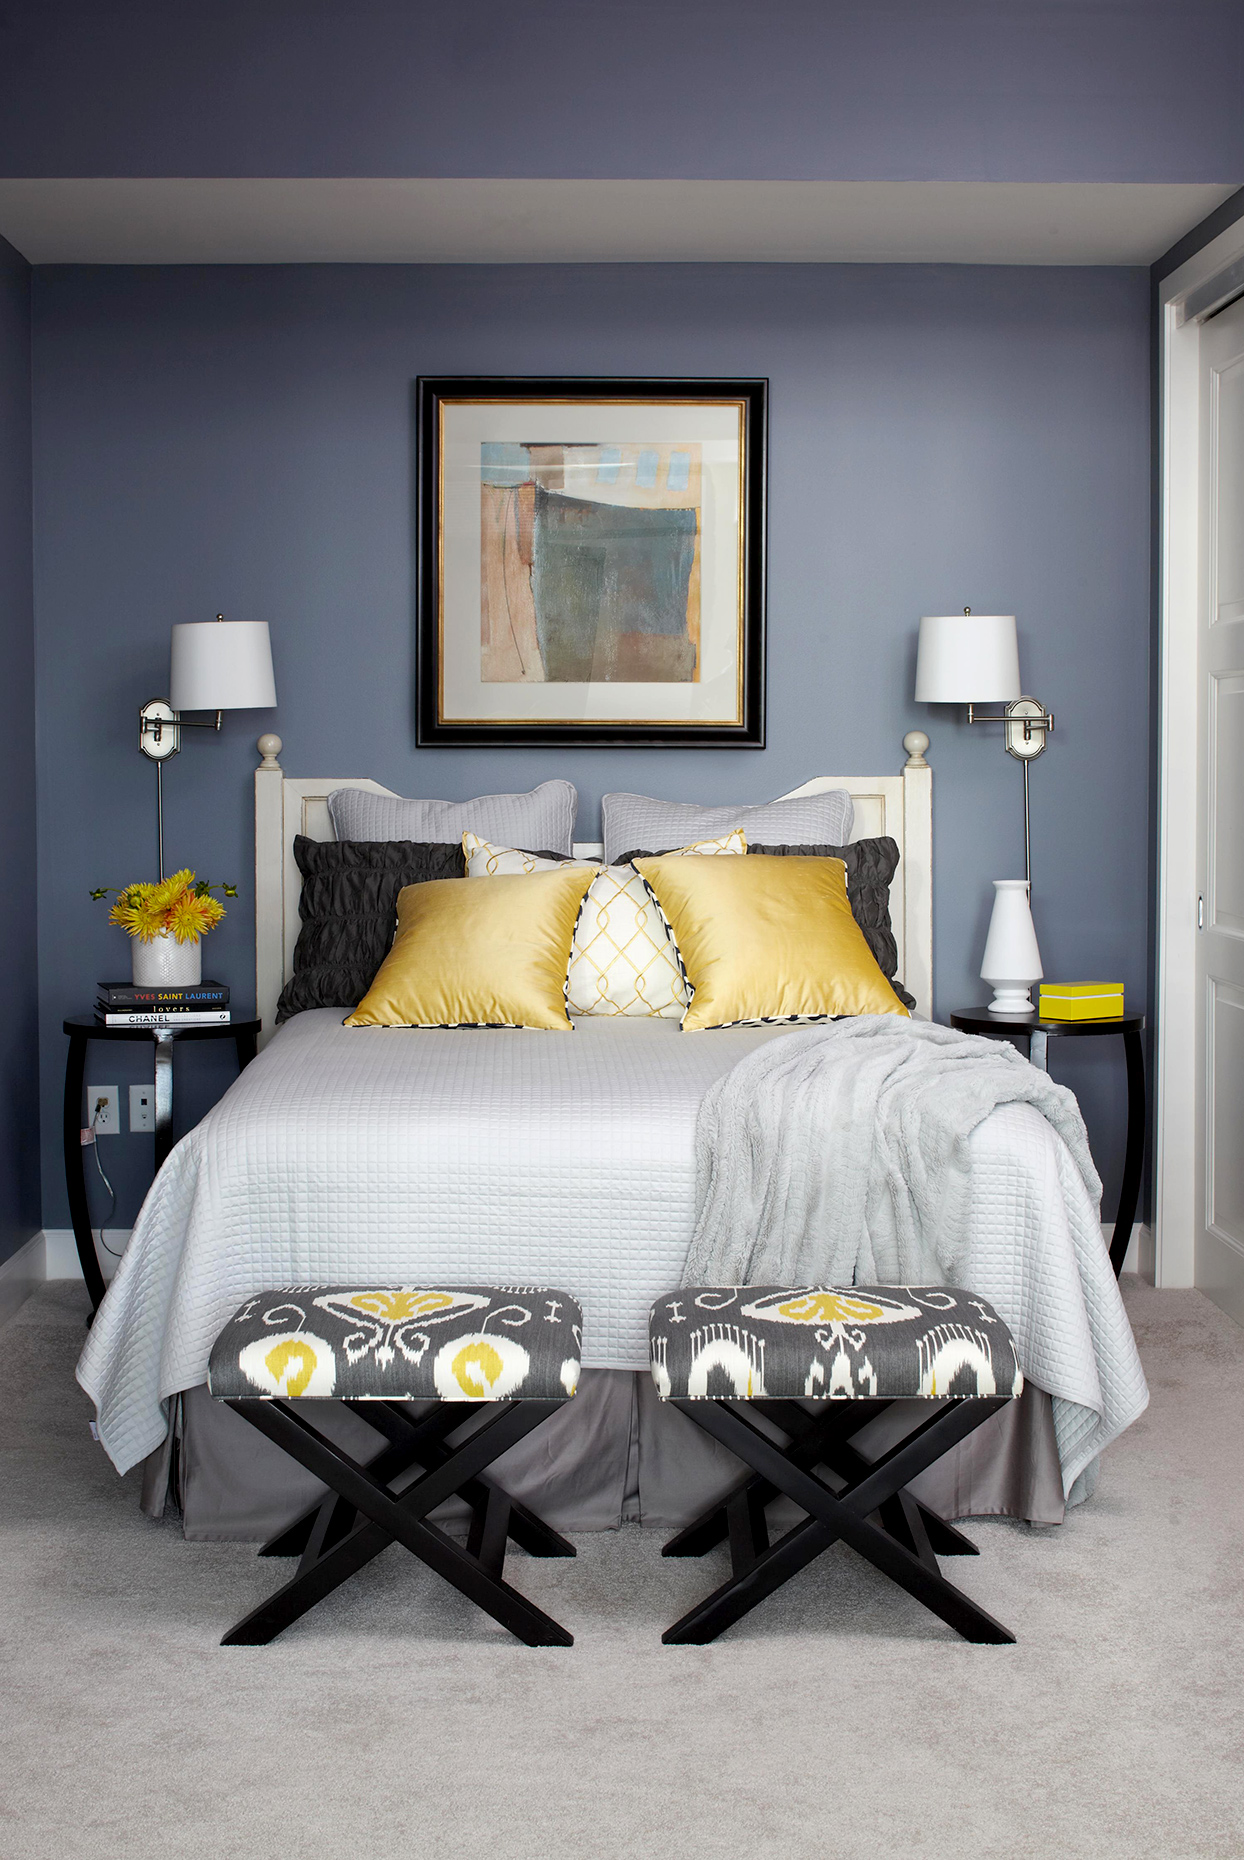 Bedroom with dark gray walls and gold and blue accents